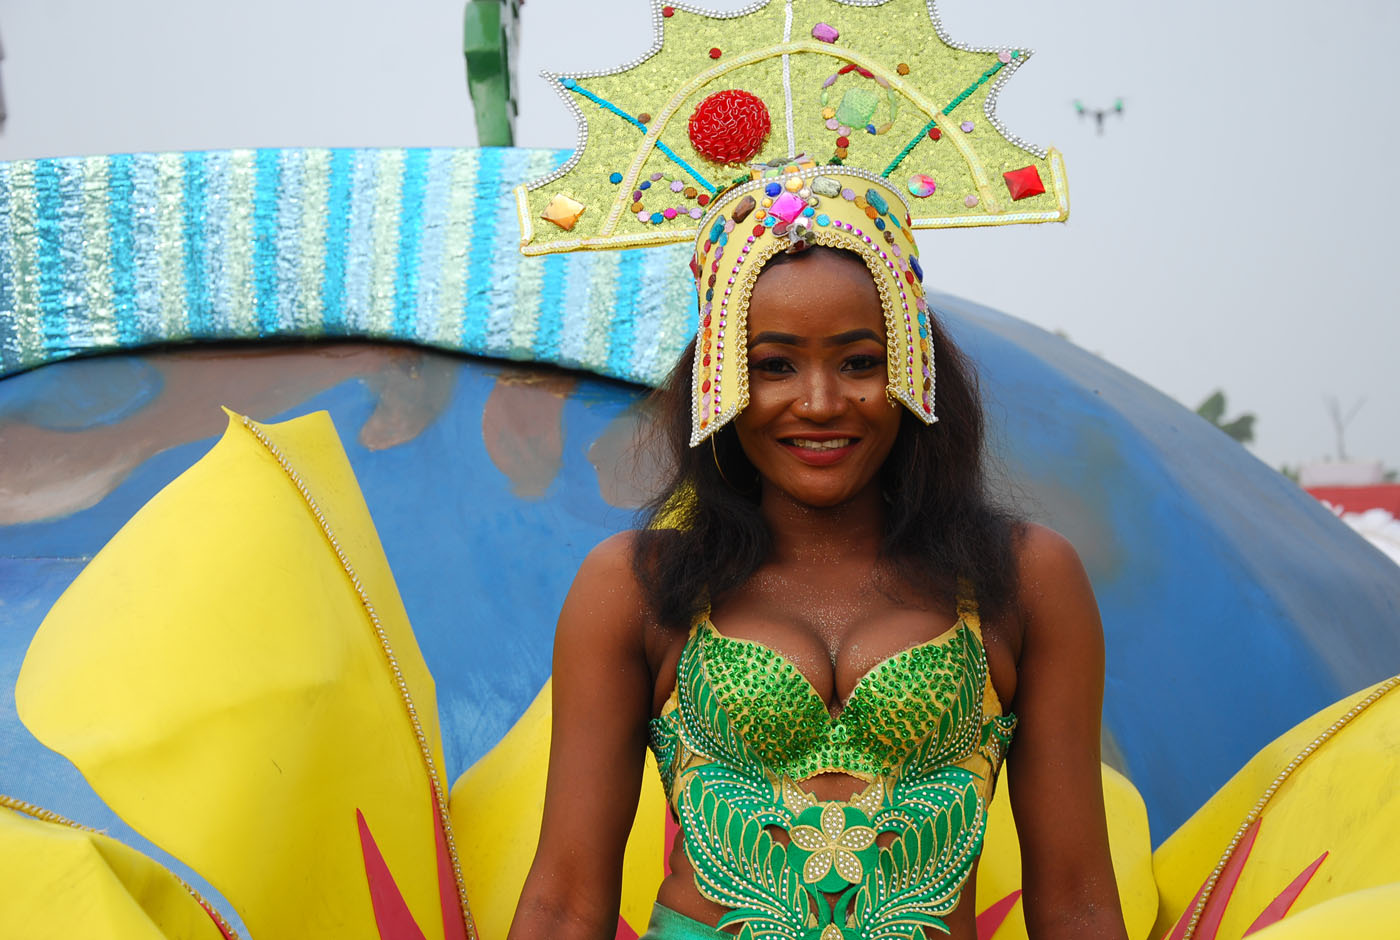 A Member of Freedom Band during the Main Event of the 2017 Carnival Calabar in Cross River State Yesterday. Photo: Nwankpa Chijioke